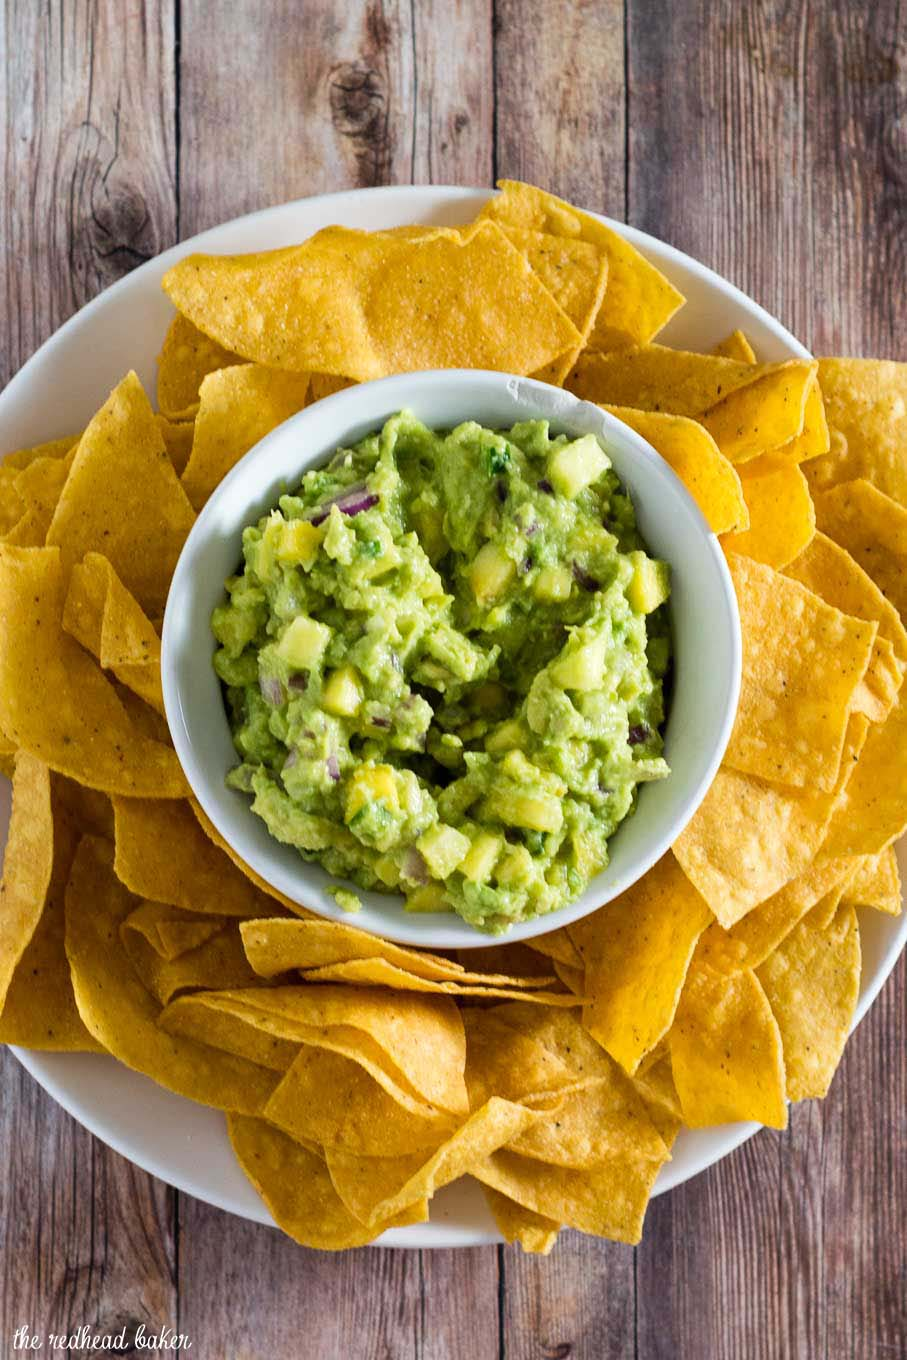 Tropical guacamole puts a sweet spin on a Mexican classic with the addition of pineapple and mango. Serve as a snack, appetizer or side dish!